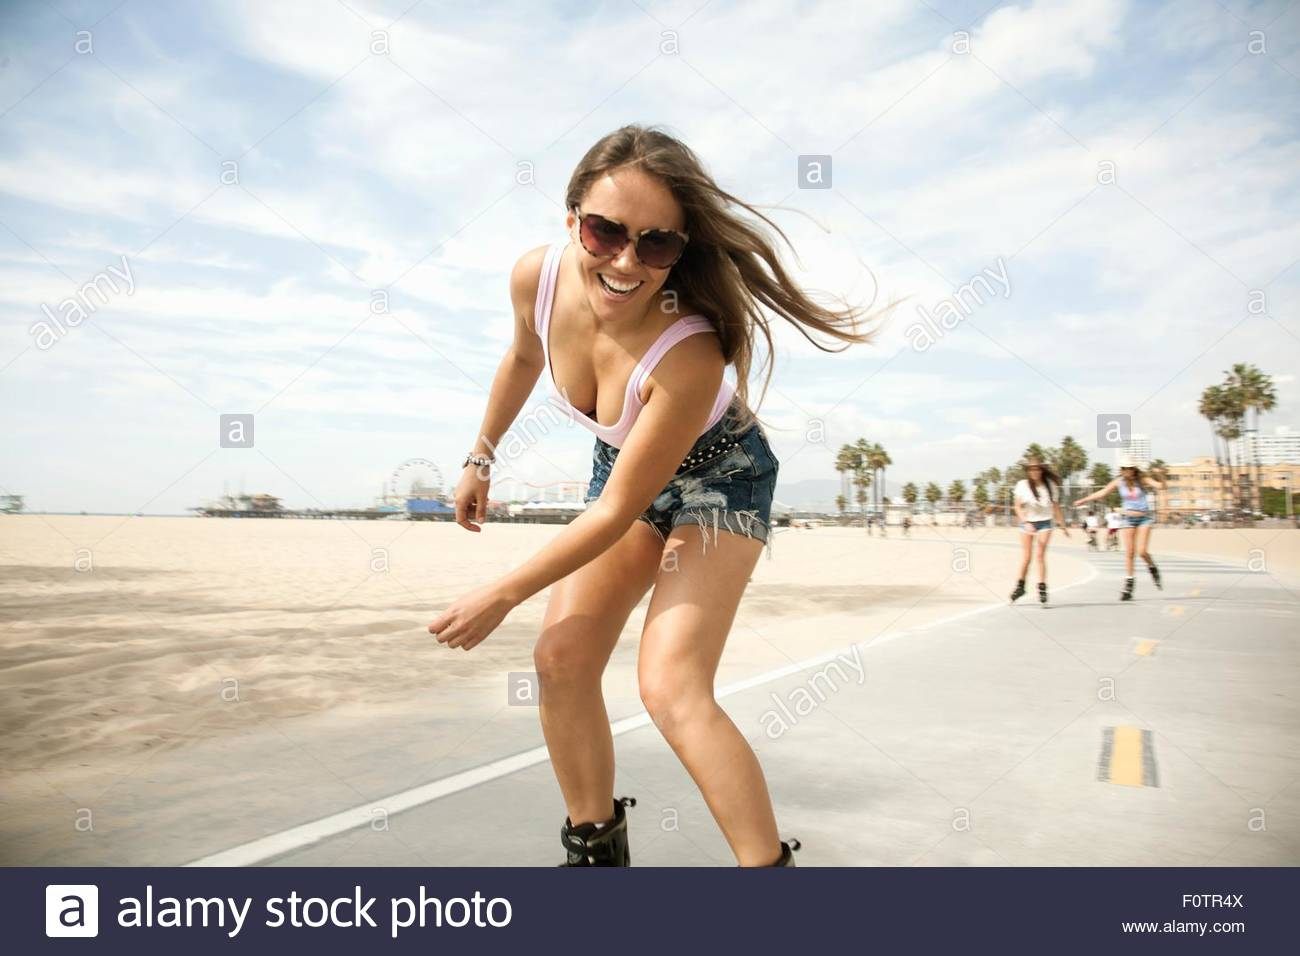 Portrait of young woman, outdoors, skating - Stock Image